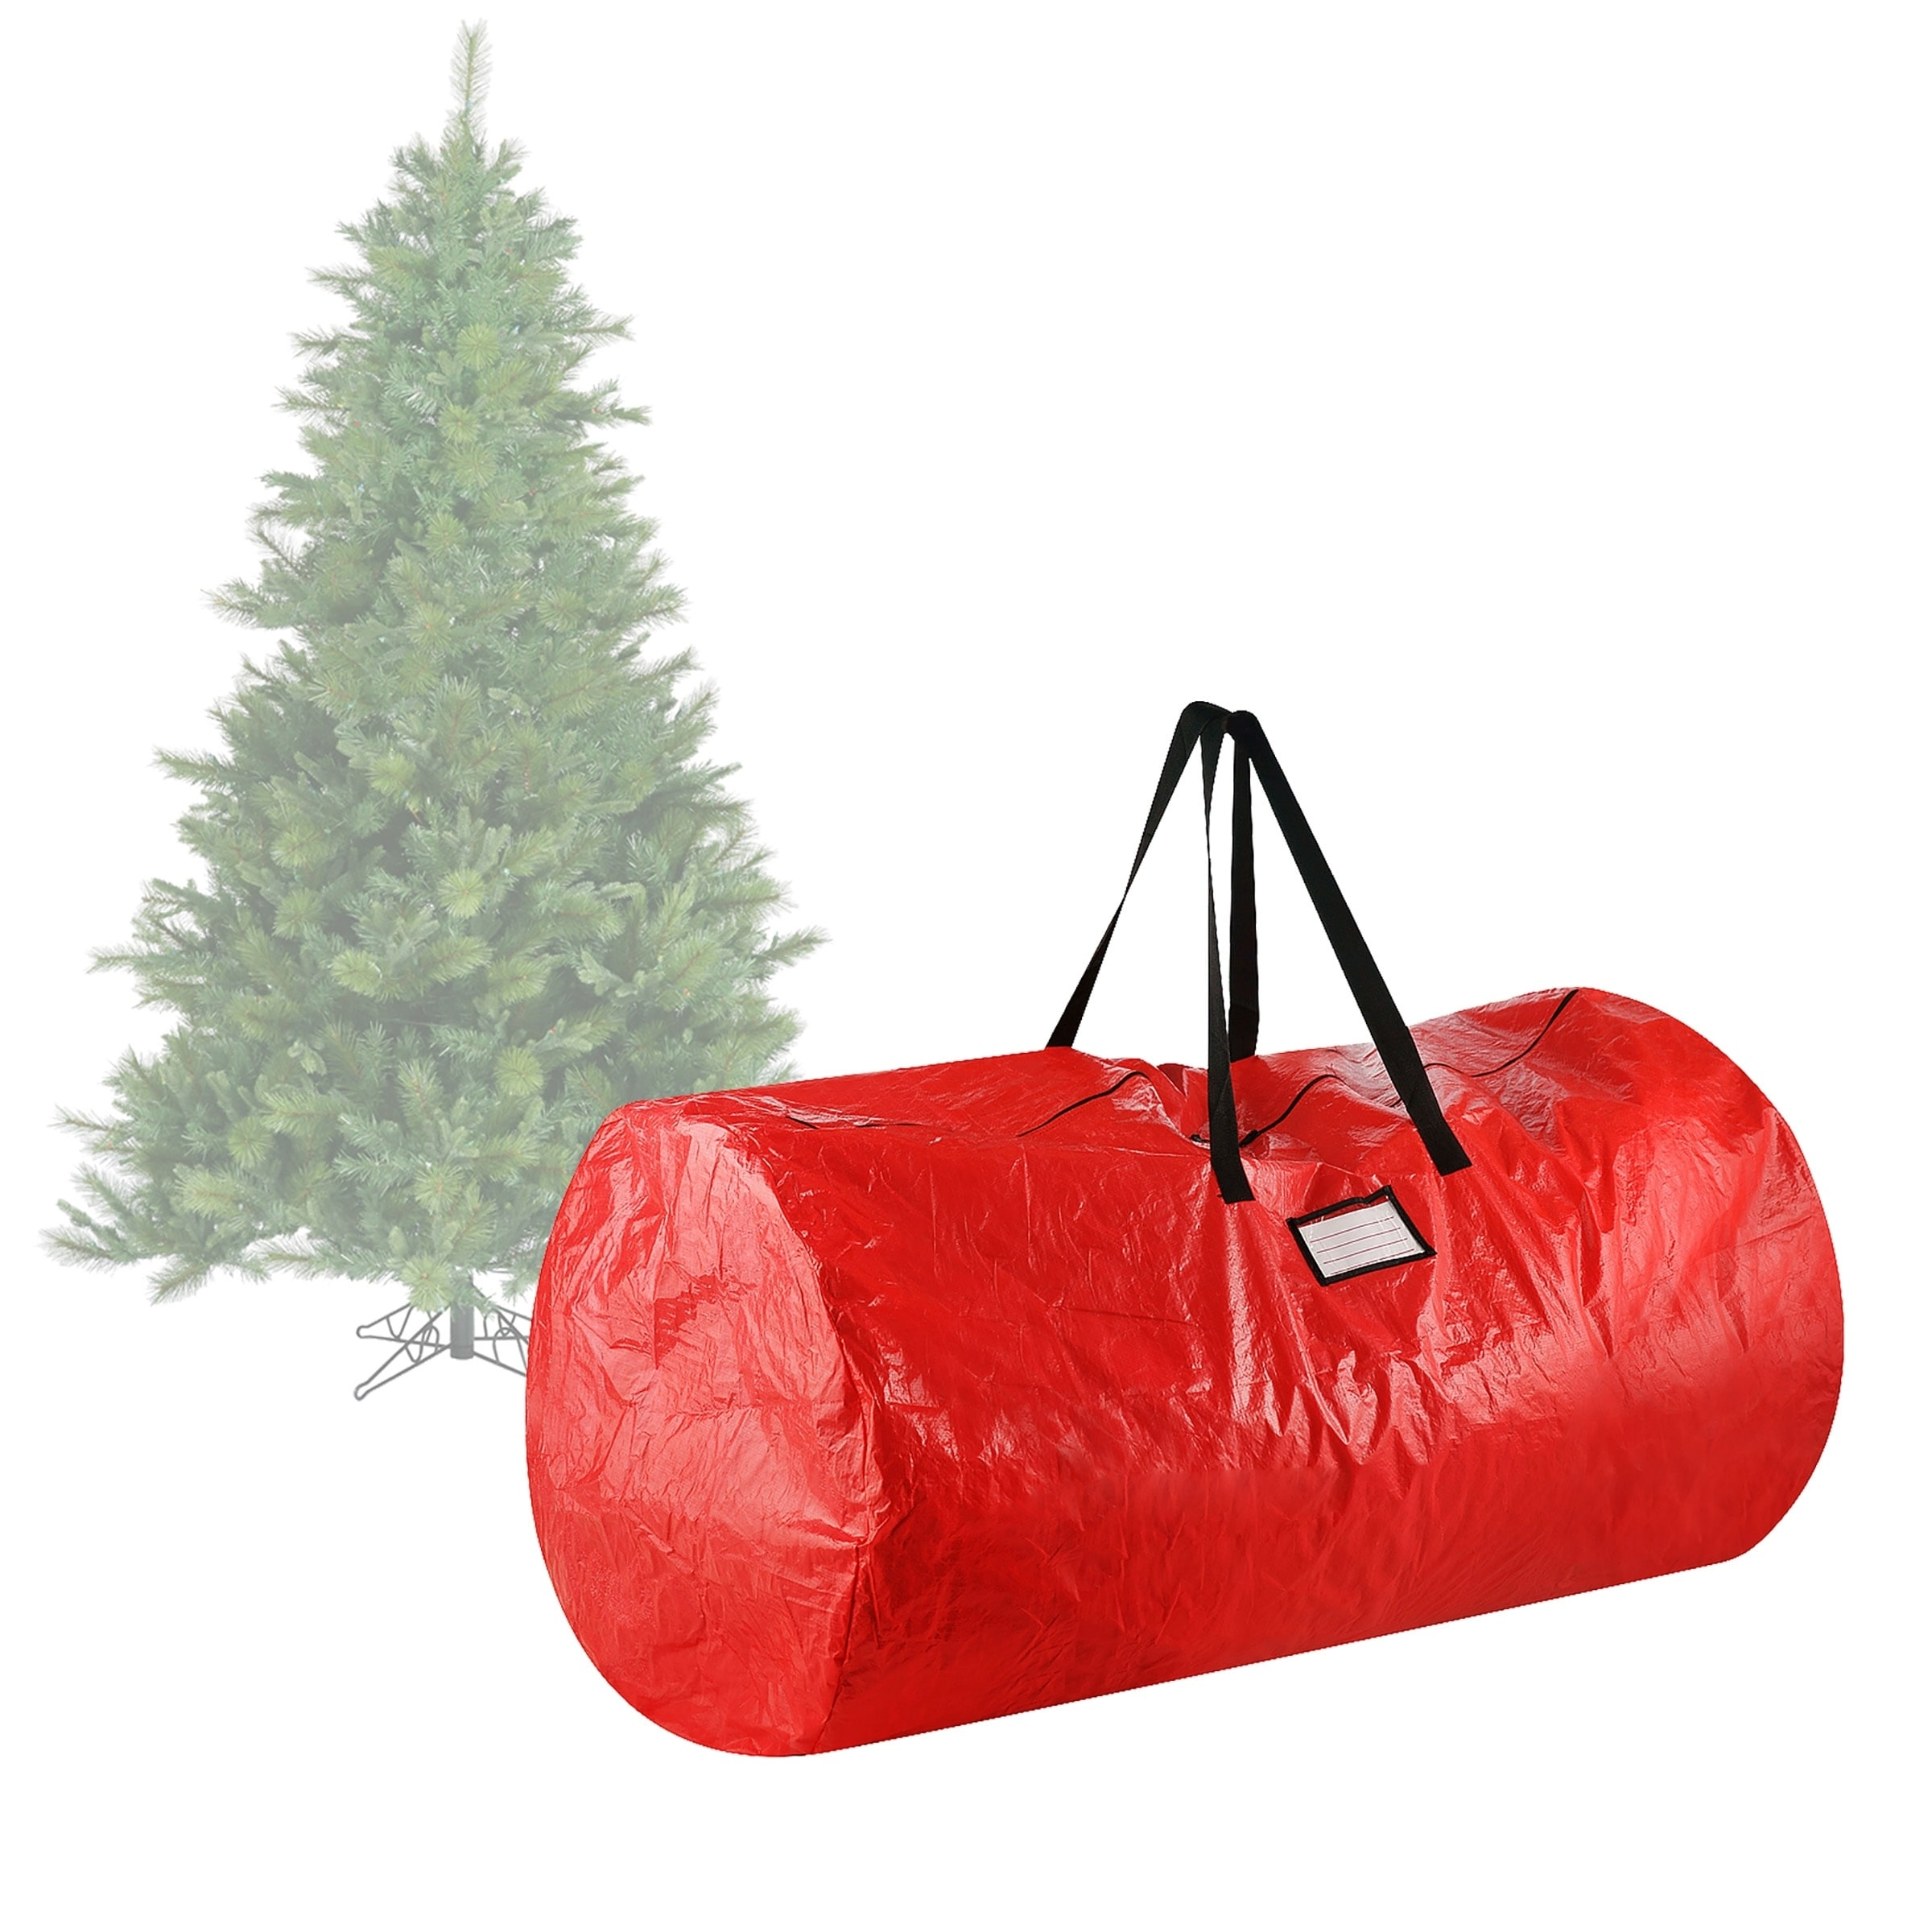 Christmas Tree Storage Bag.Elf Stor Deluxe Holiday Christmas Tree Storage Bag 9 Tree